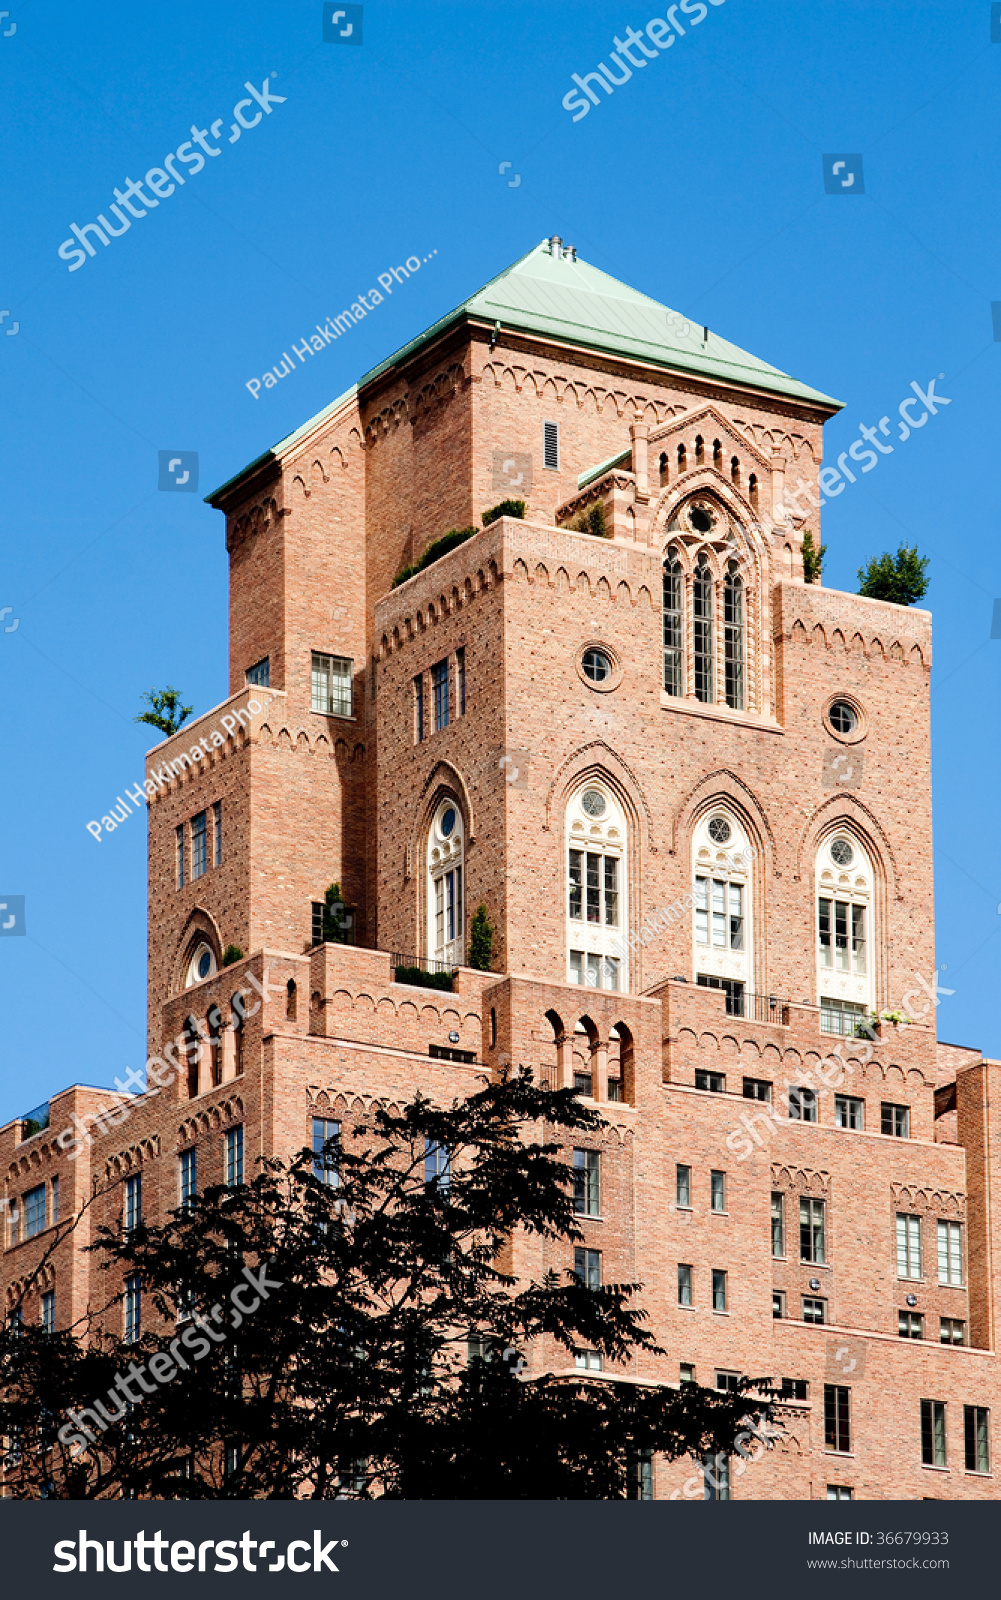 Old Style Architecture Brick Apartment Building With Gothic Arched